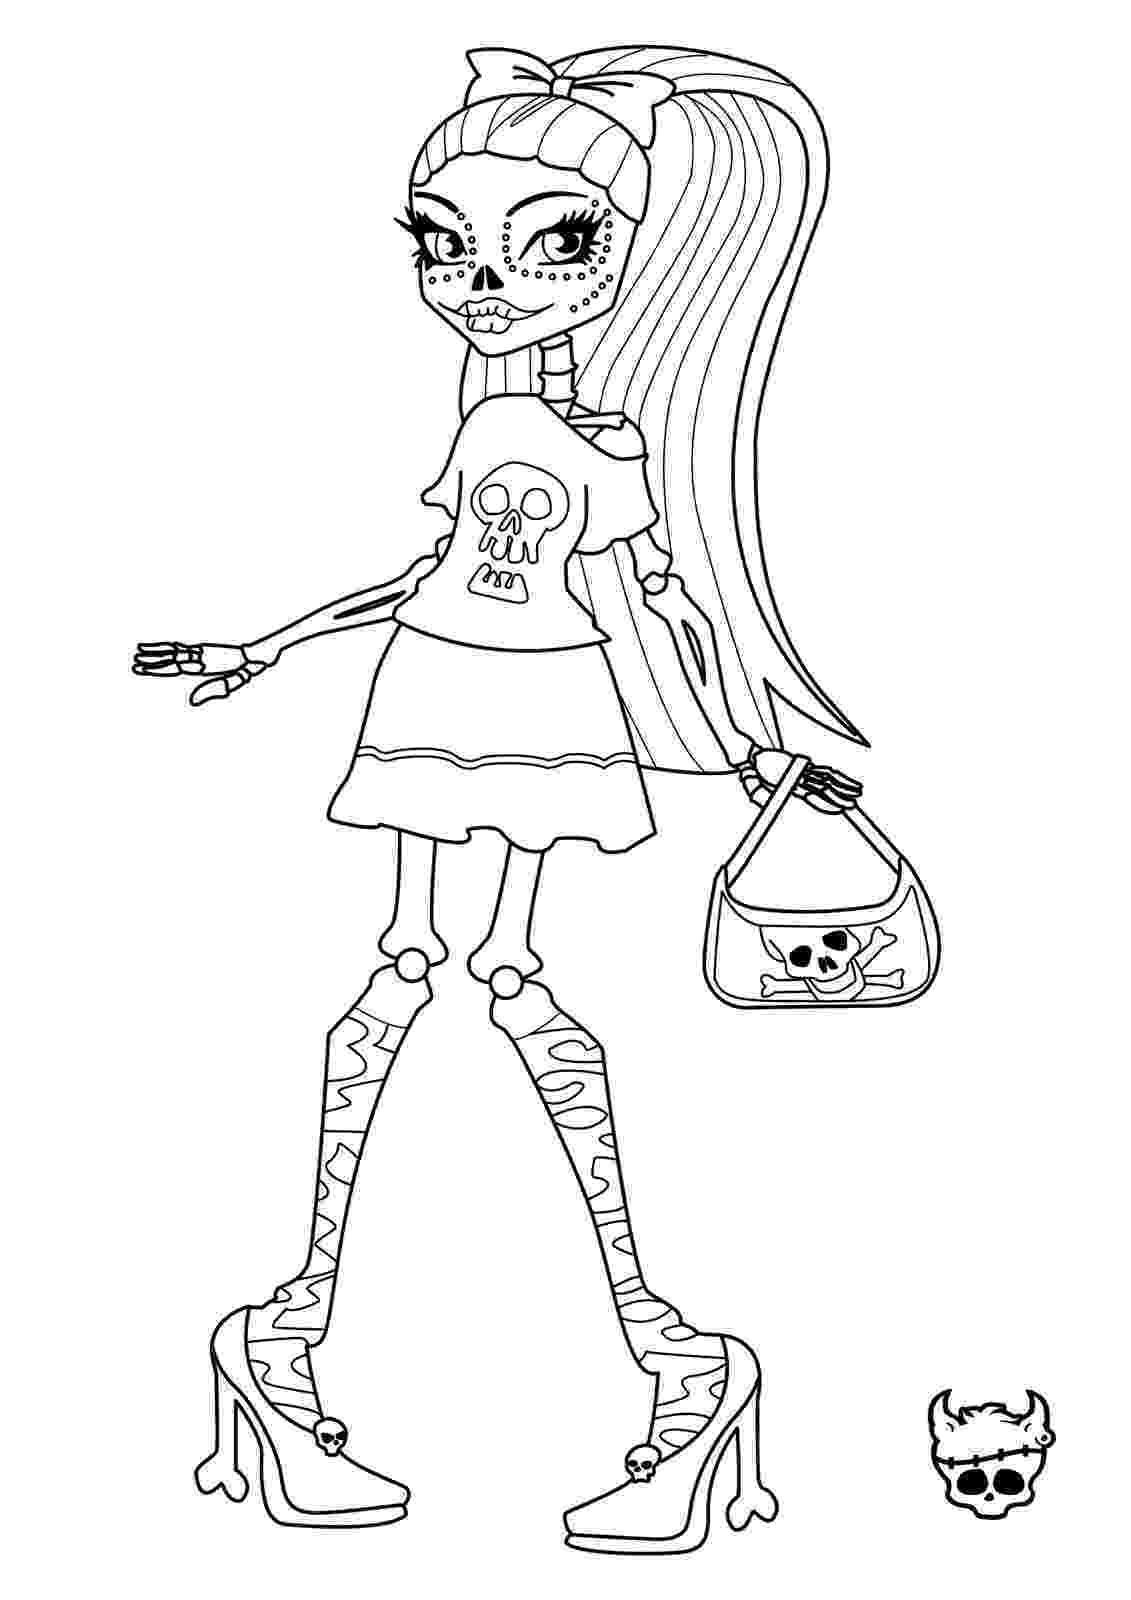 monster high coloring picture monster high catty noir coloring page free printable high picture monster coloring